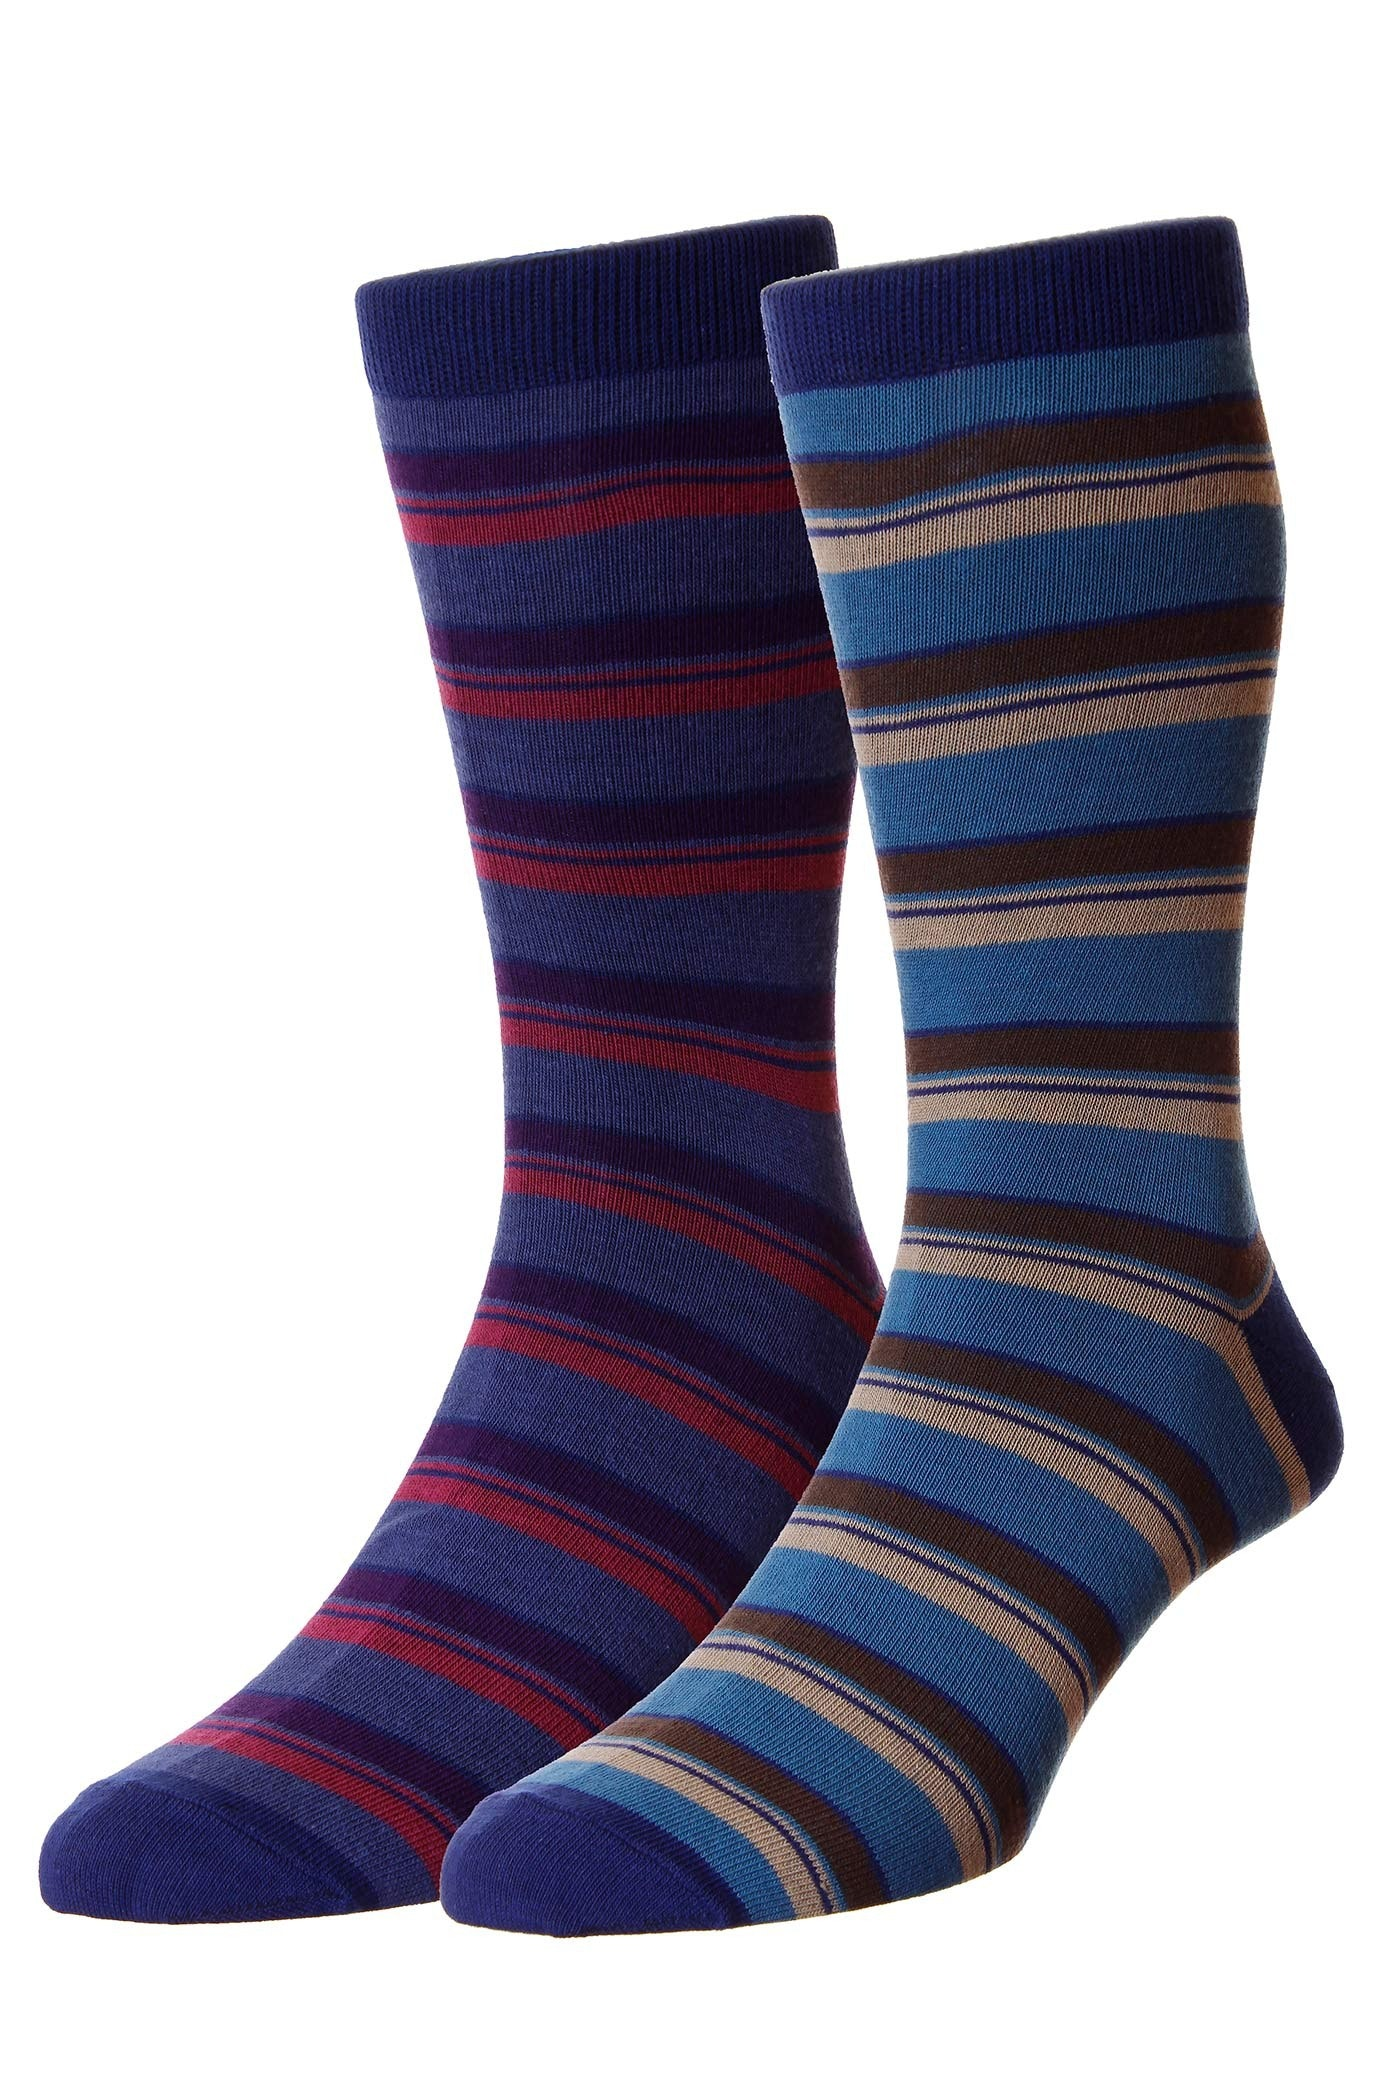 HJ Hall Bocastle Stripe Twin Pack Socks Navy